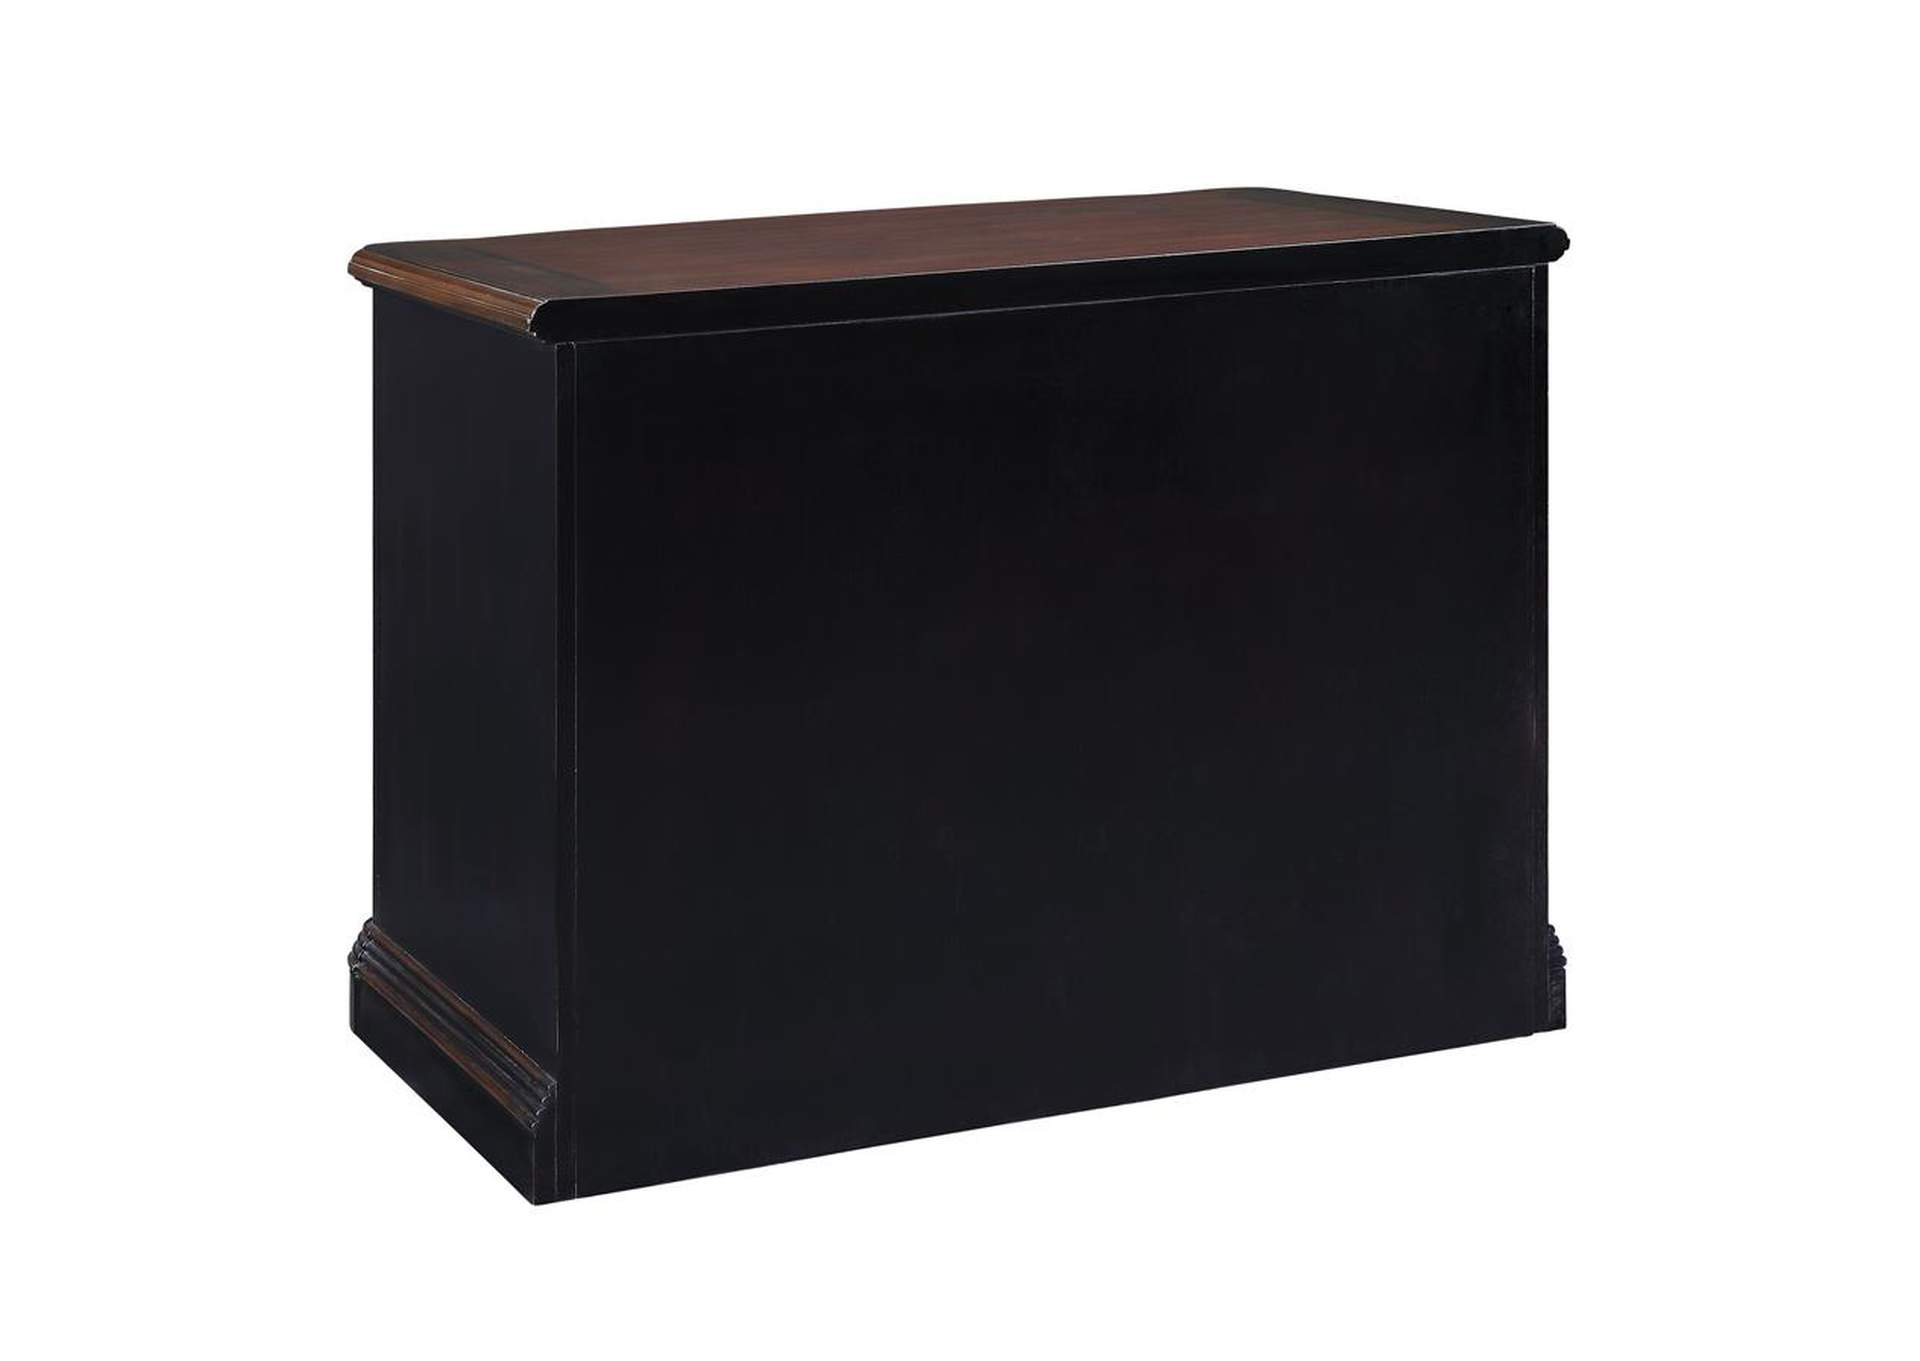 Woodsmoke Gorman Espresso File Cabinet,Coaster Furniture